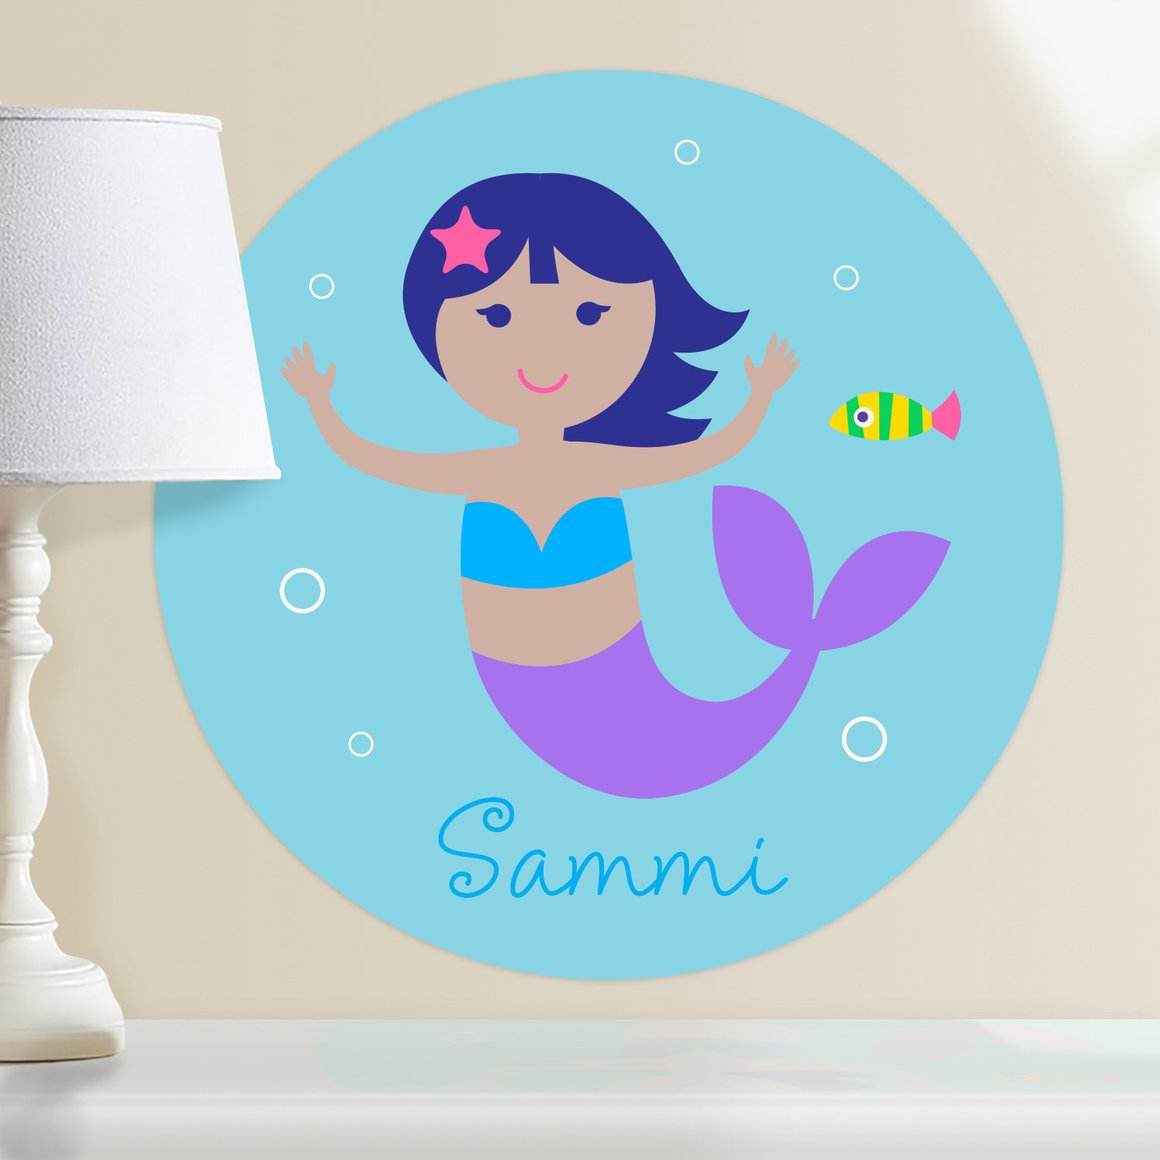 Mermaids (Dark Skin, Dark Hair) Personalized Kids Wall Dotz Decal